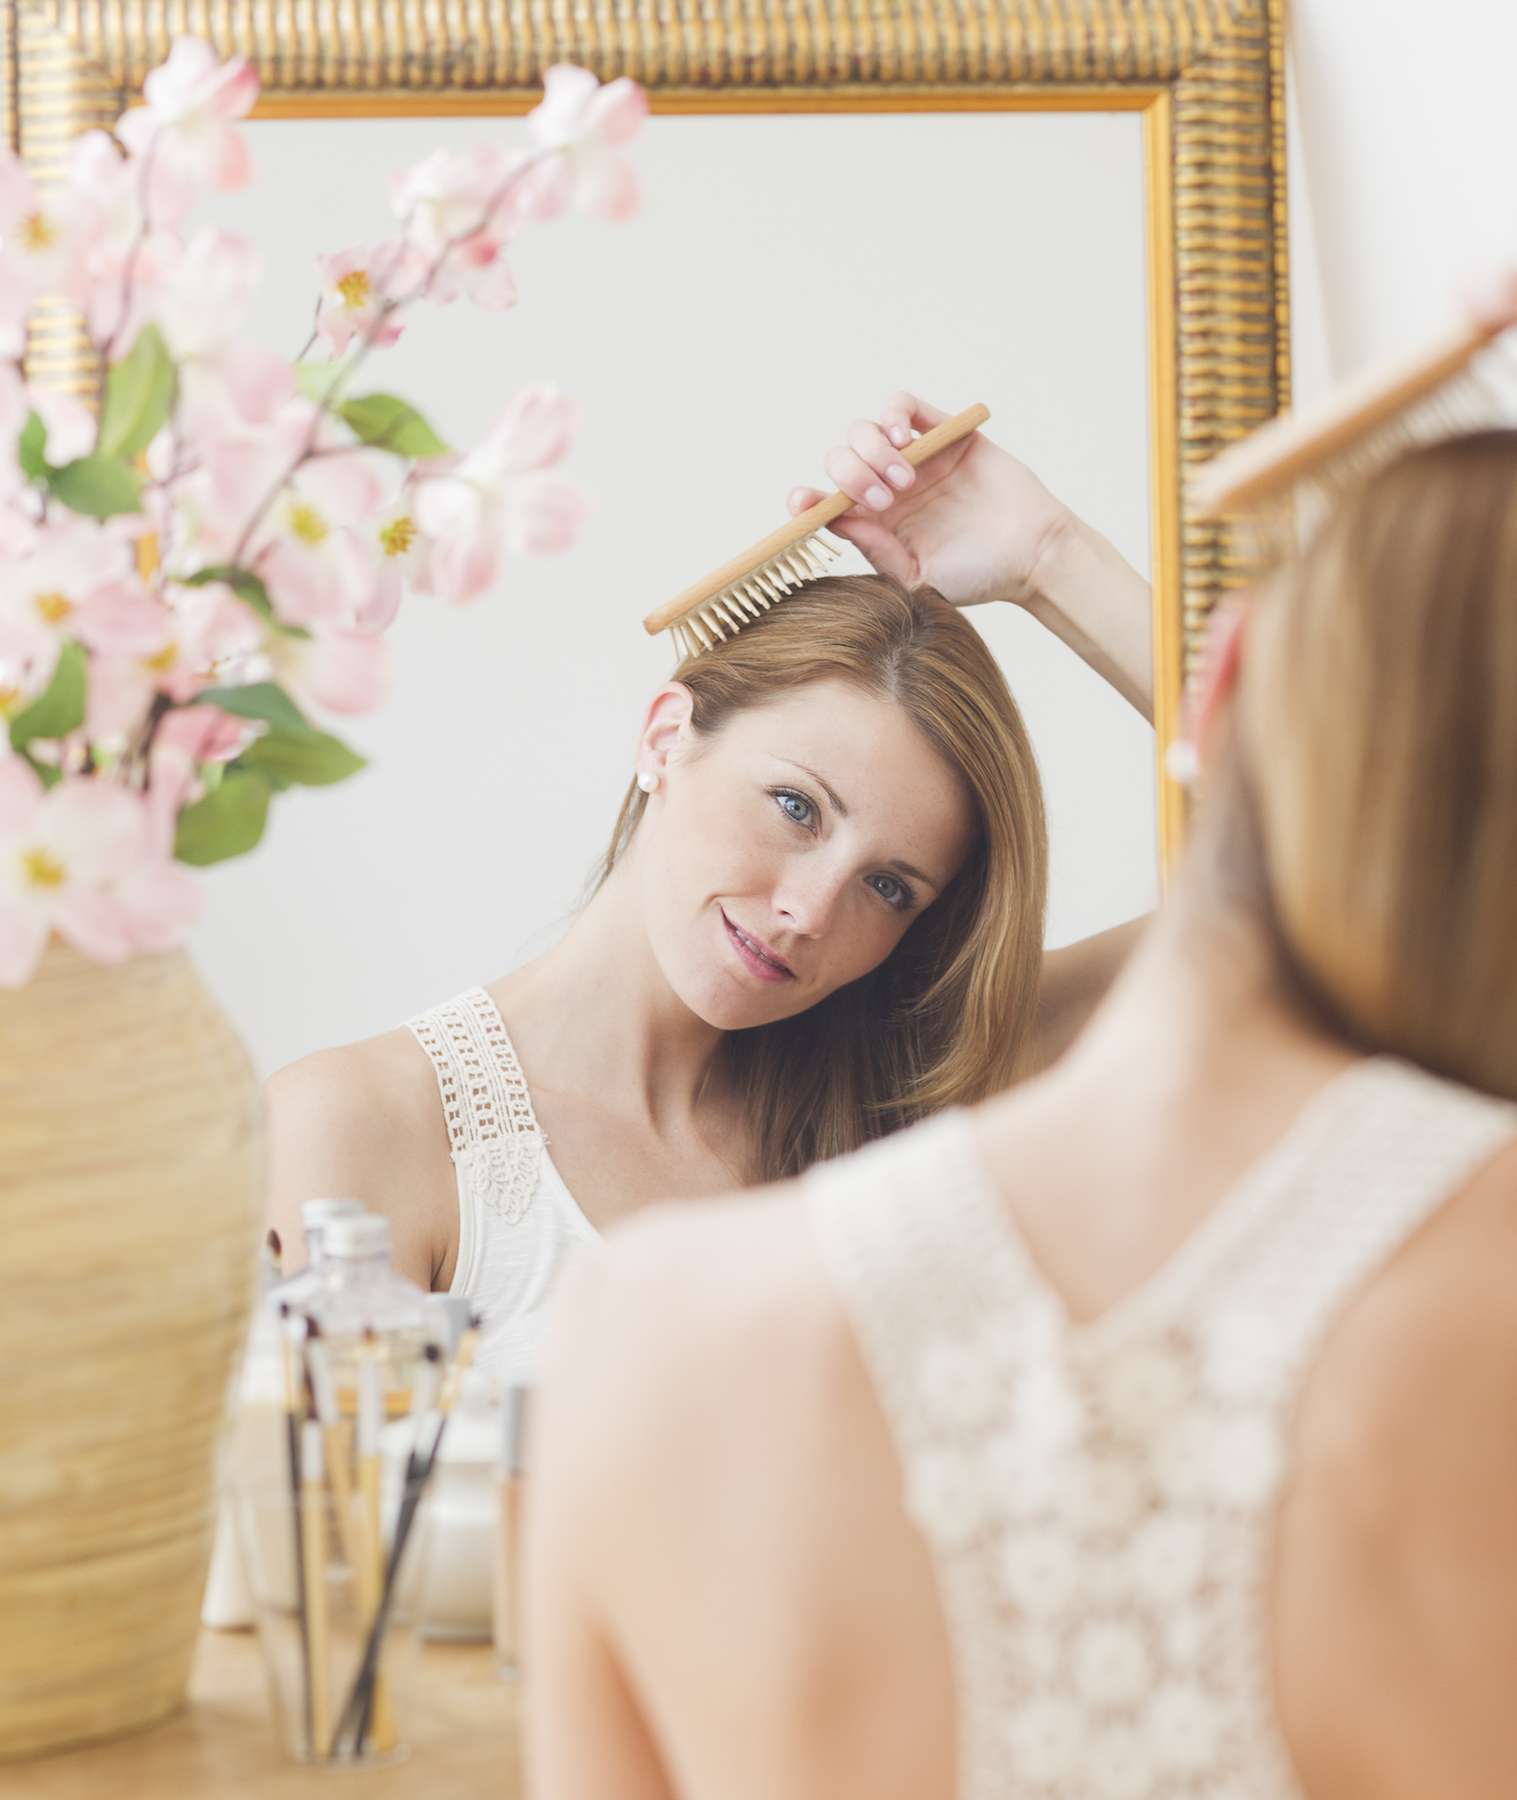 Woman brushing hair in front of mirror